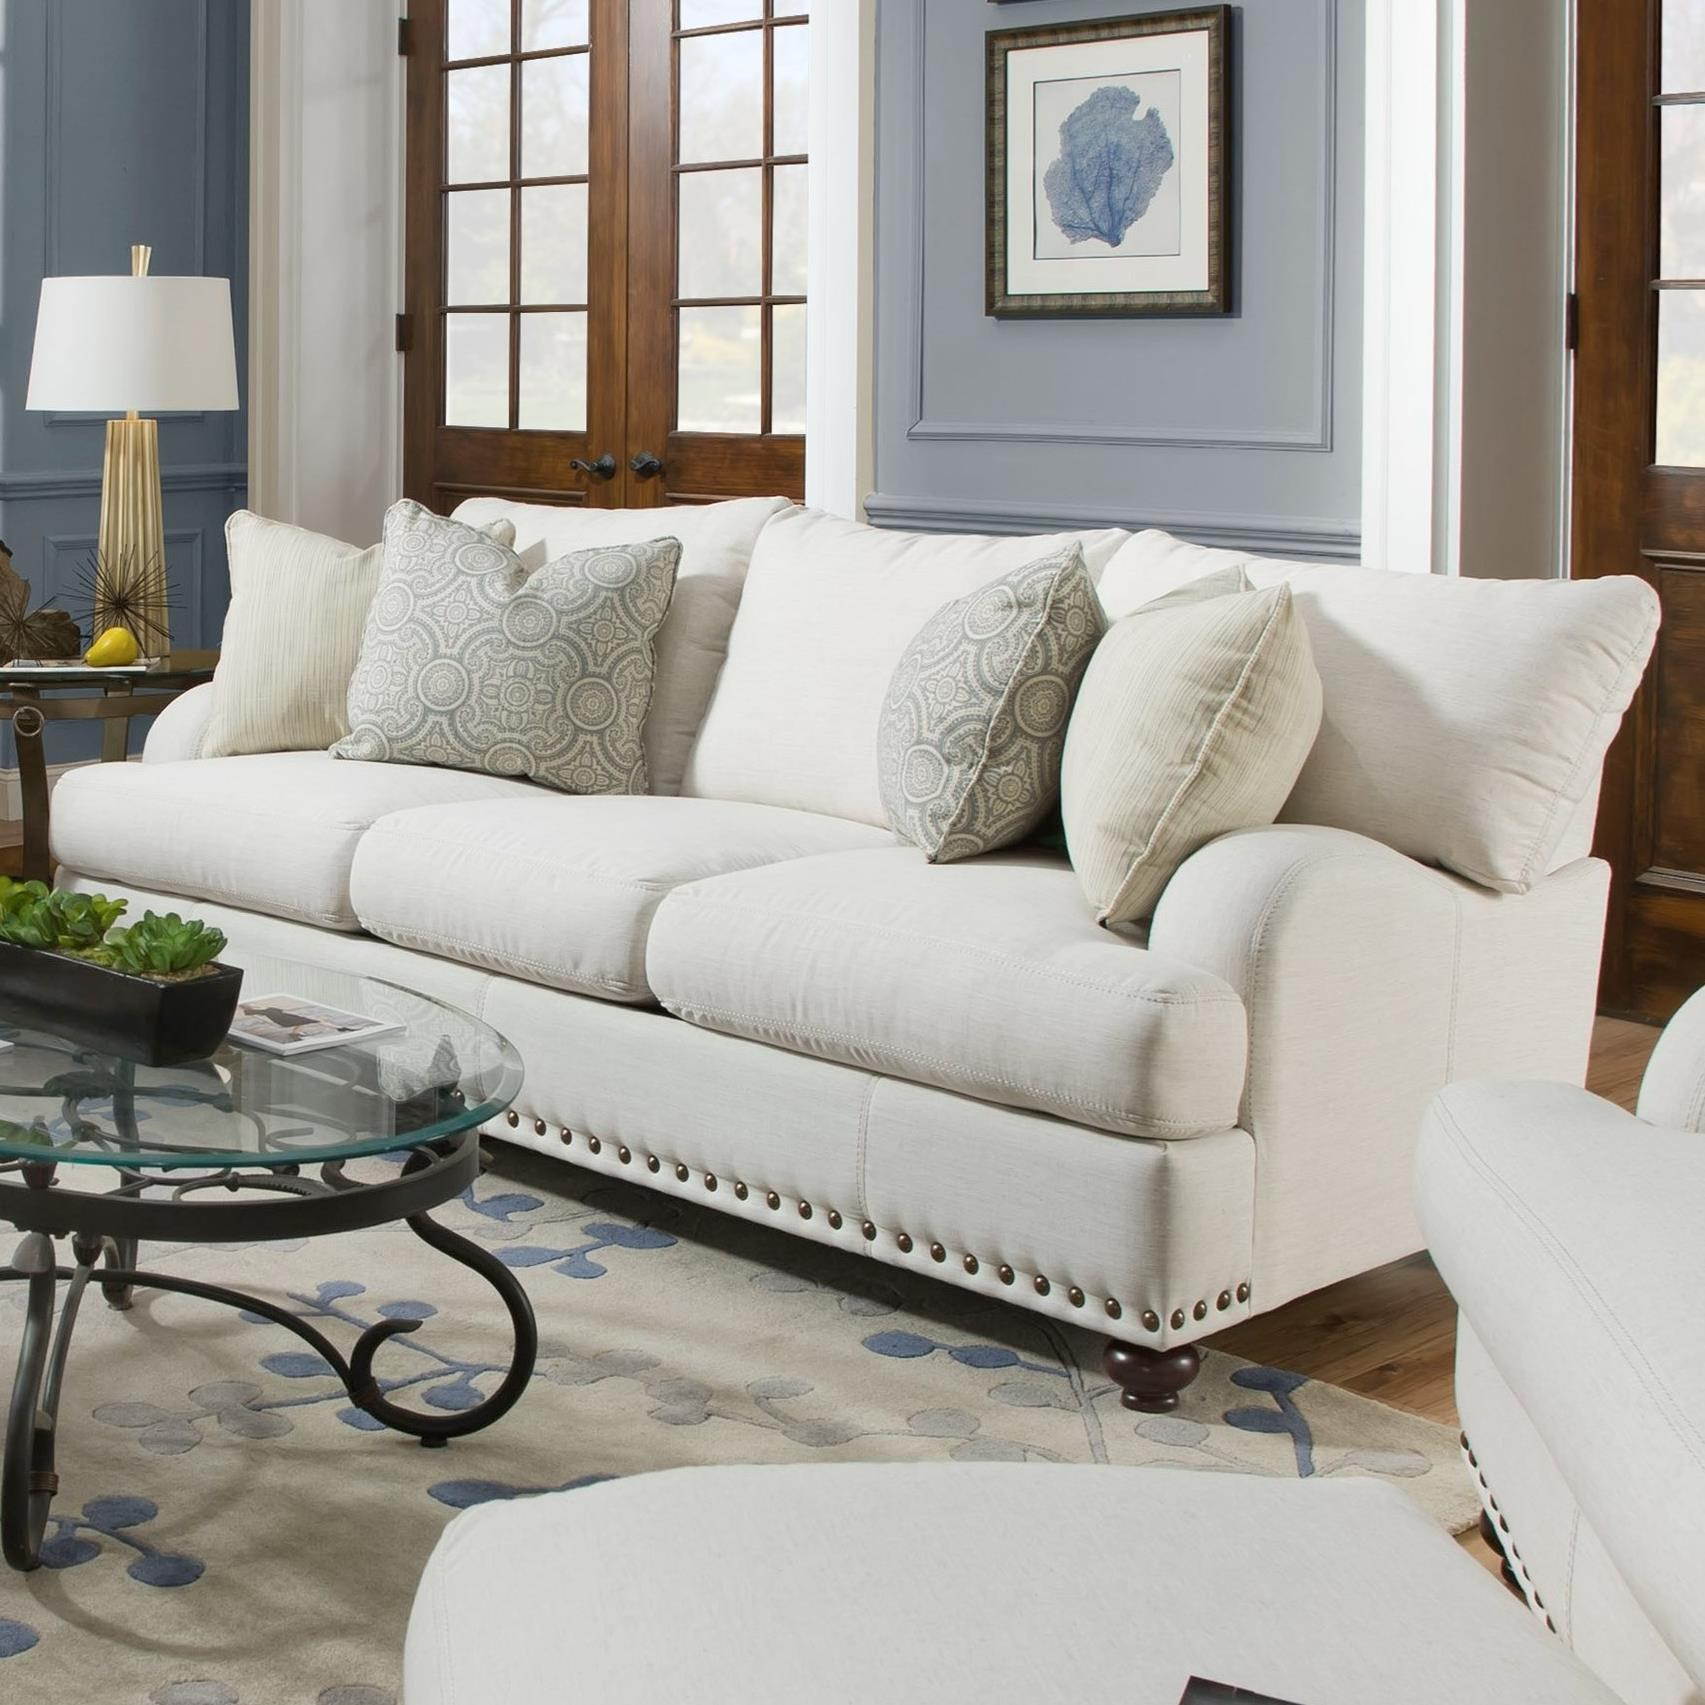 Ashton Sofa Dressed With Our Madison Ottoman And A: Franklin Brinton Sofa With Reversible Cushions